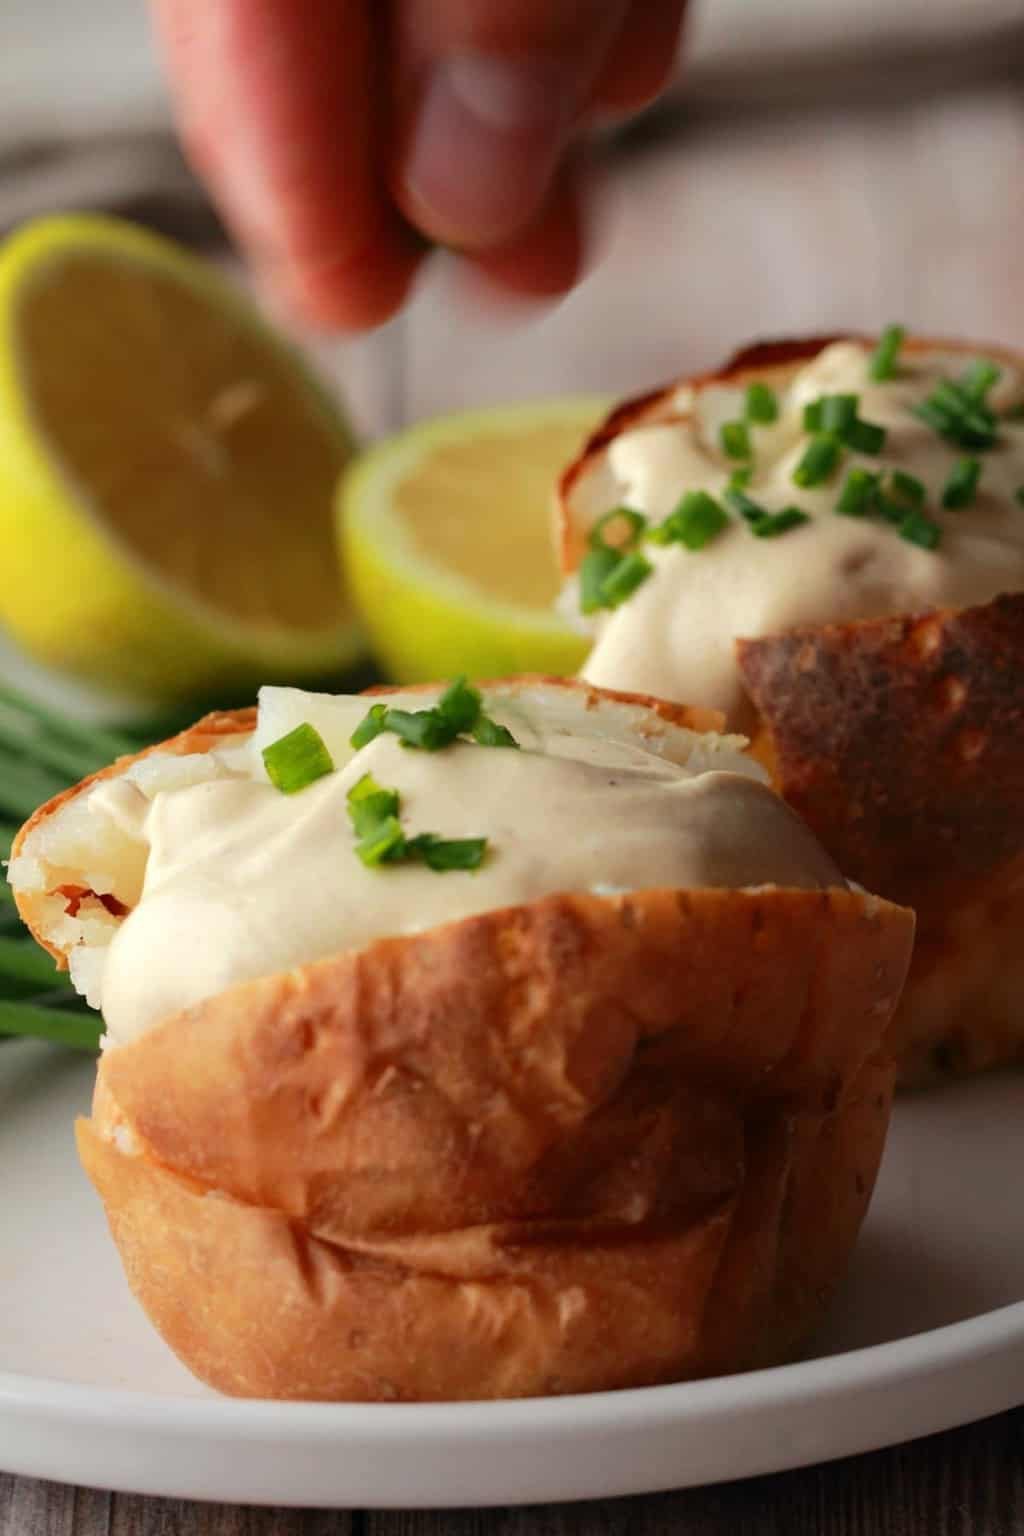 Vegan Sour Cream and chopped chives on top of a baked potato.